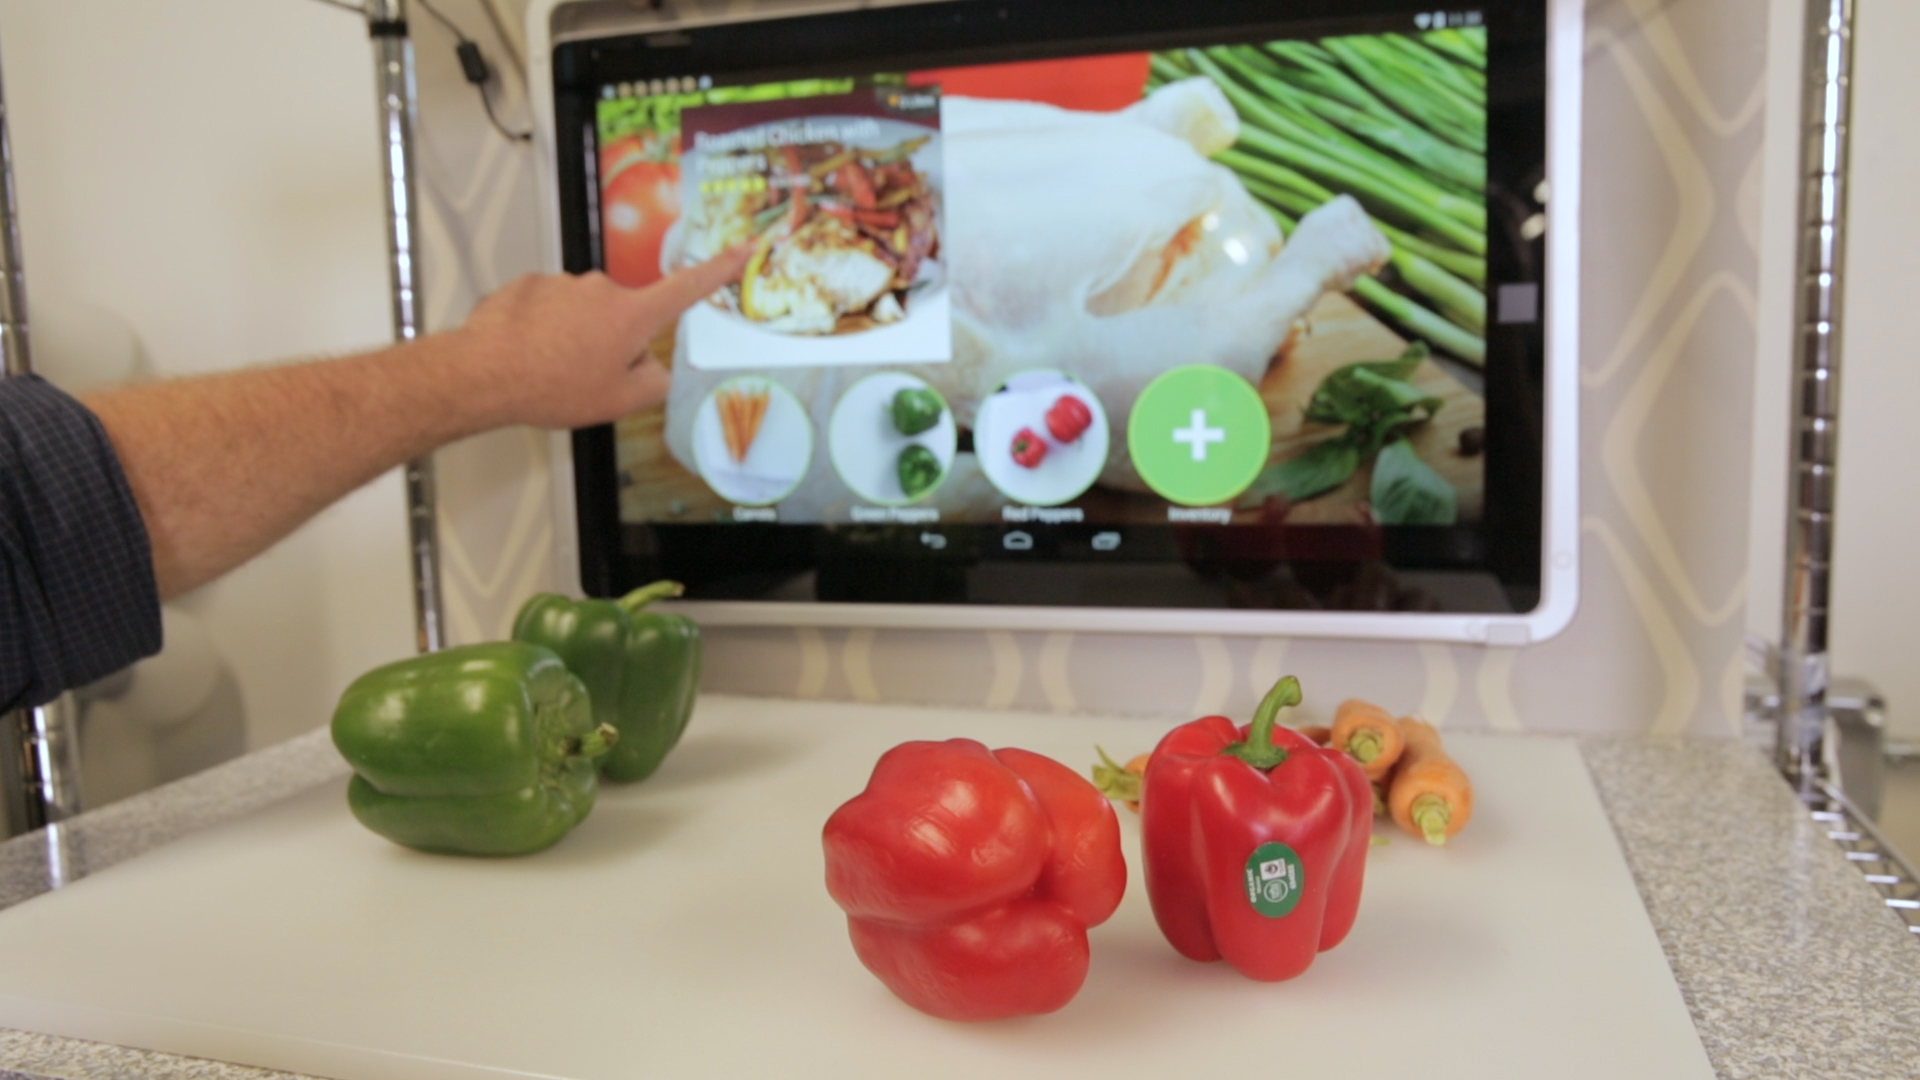 Video: Soon your food will talk to you through your kitchen